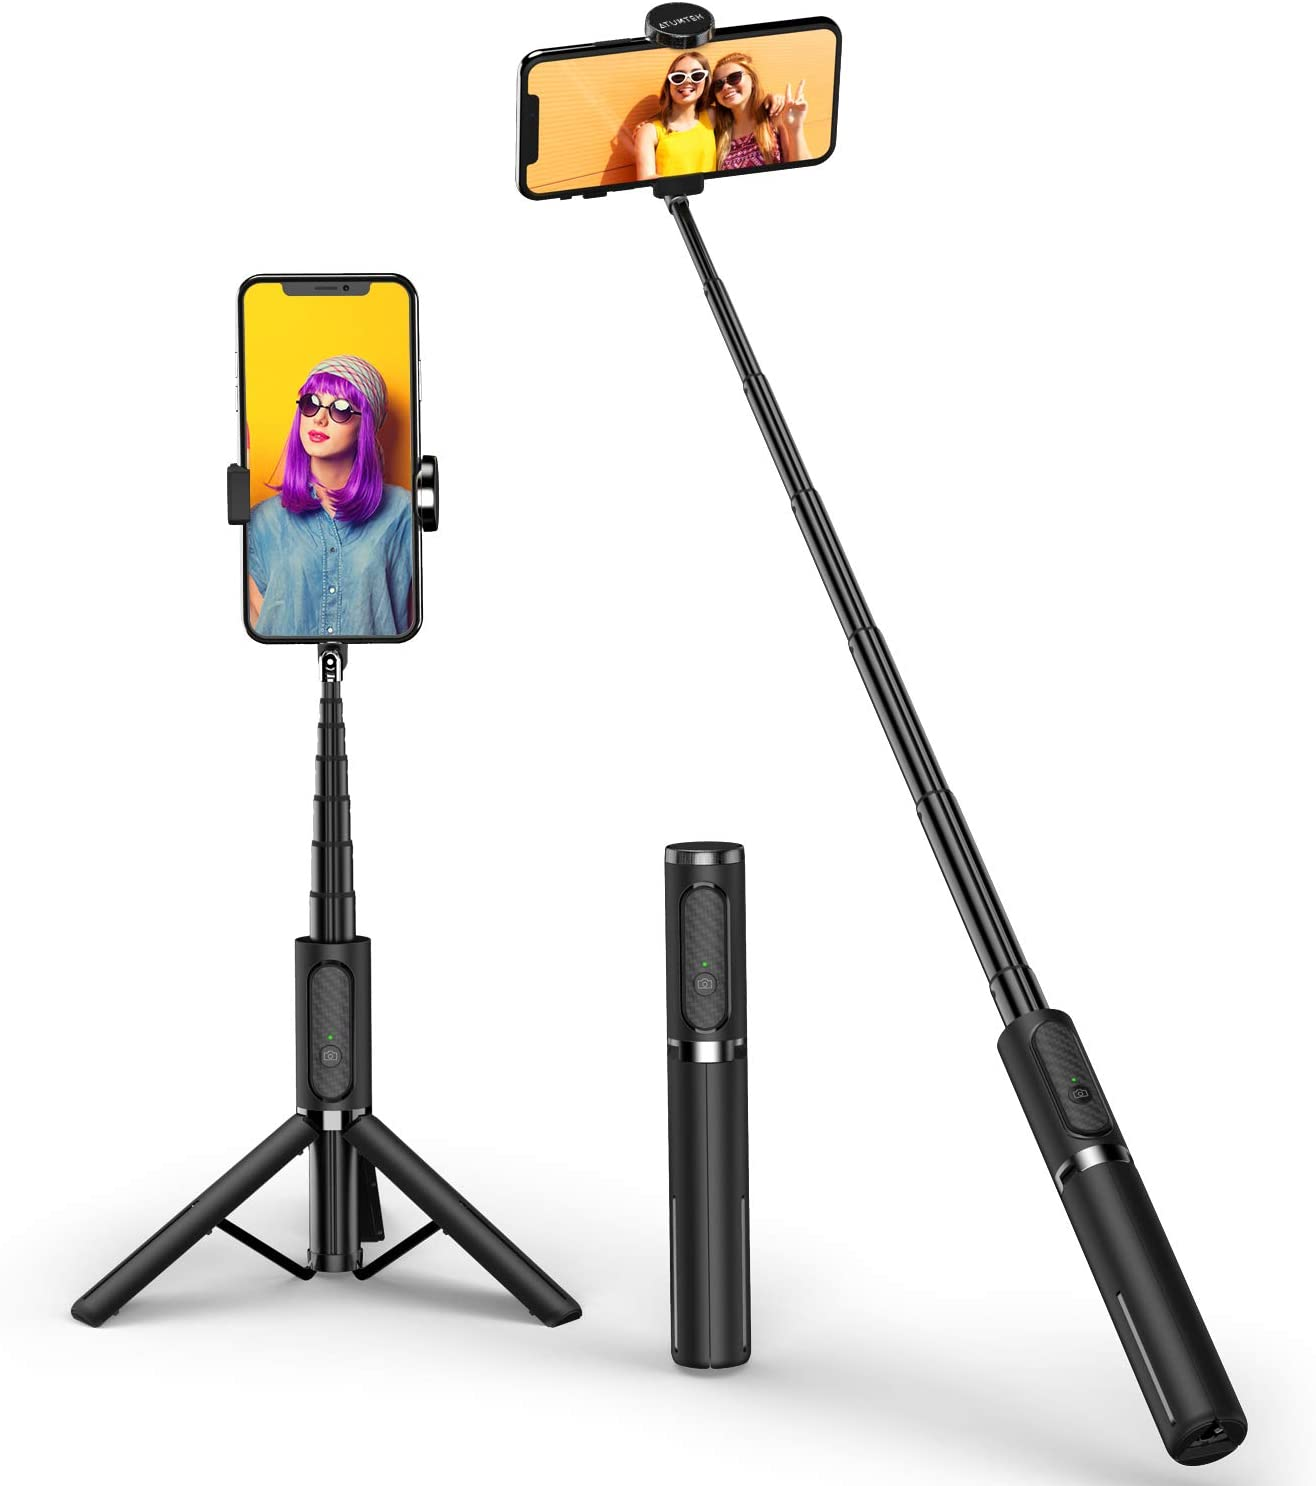 ATUMTEK Bluetooth Selfie Stick Tripod, Mini Extendable 3 in 1 Aluminum Selfie Stick with Wireless Remote and Tripod Stand 270 Rotation for iPhone 11/11 Pro/XS Max/XS/XR/X/8/7, Samsung and Smartphone